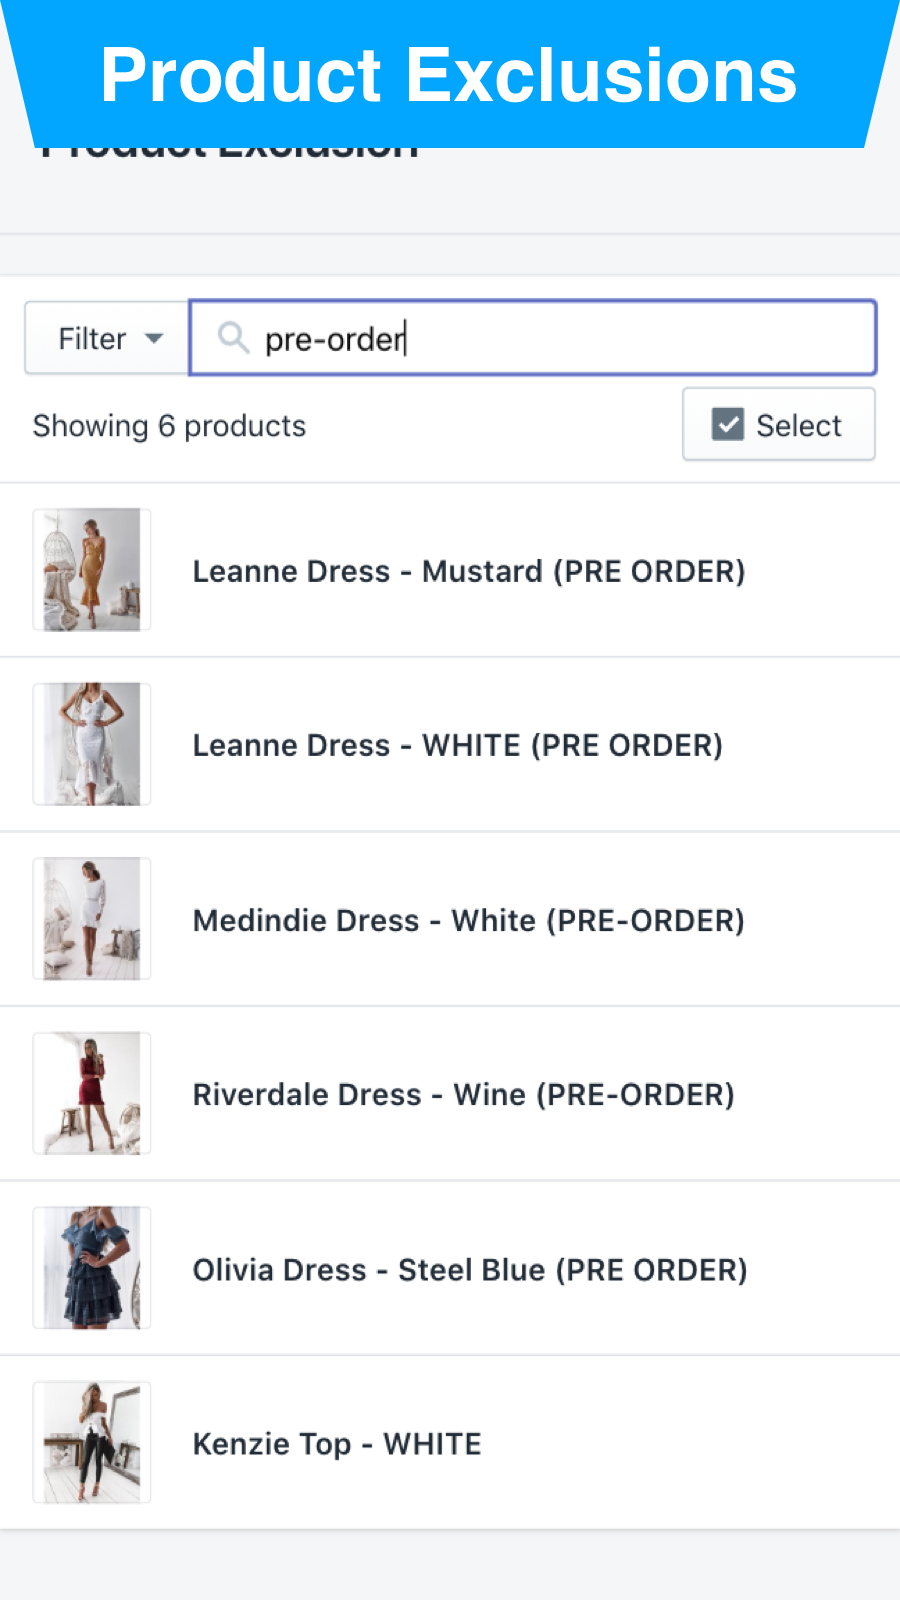 Product Exclusions